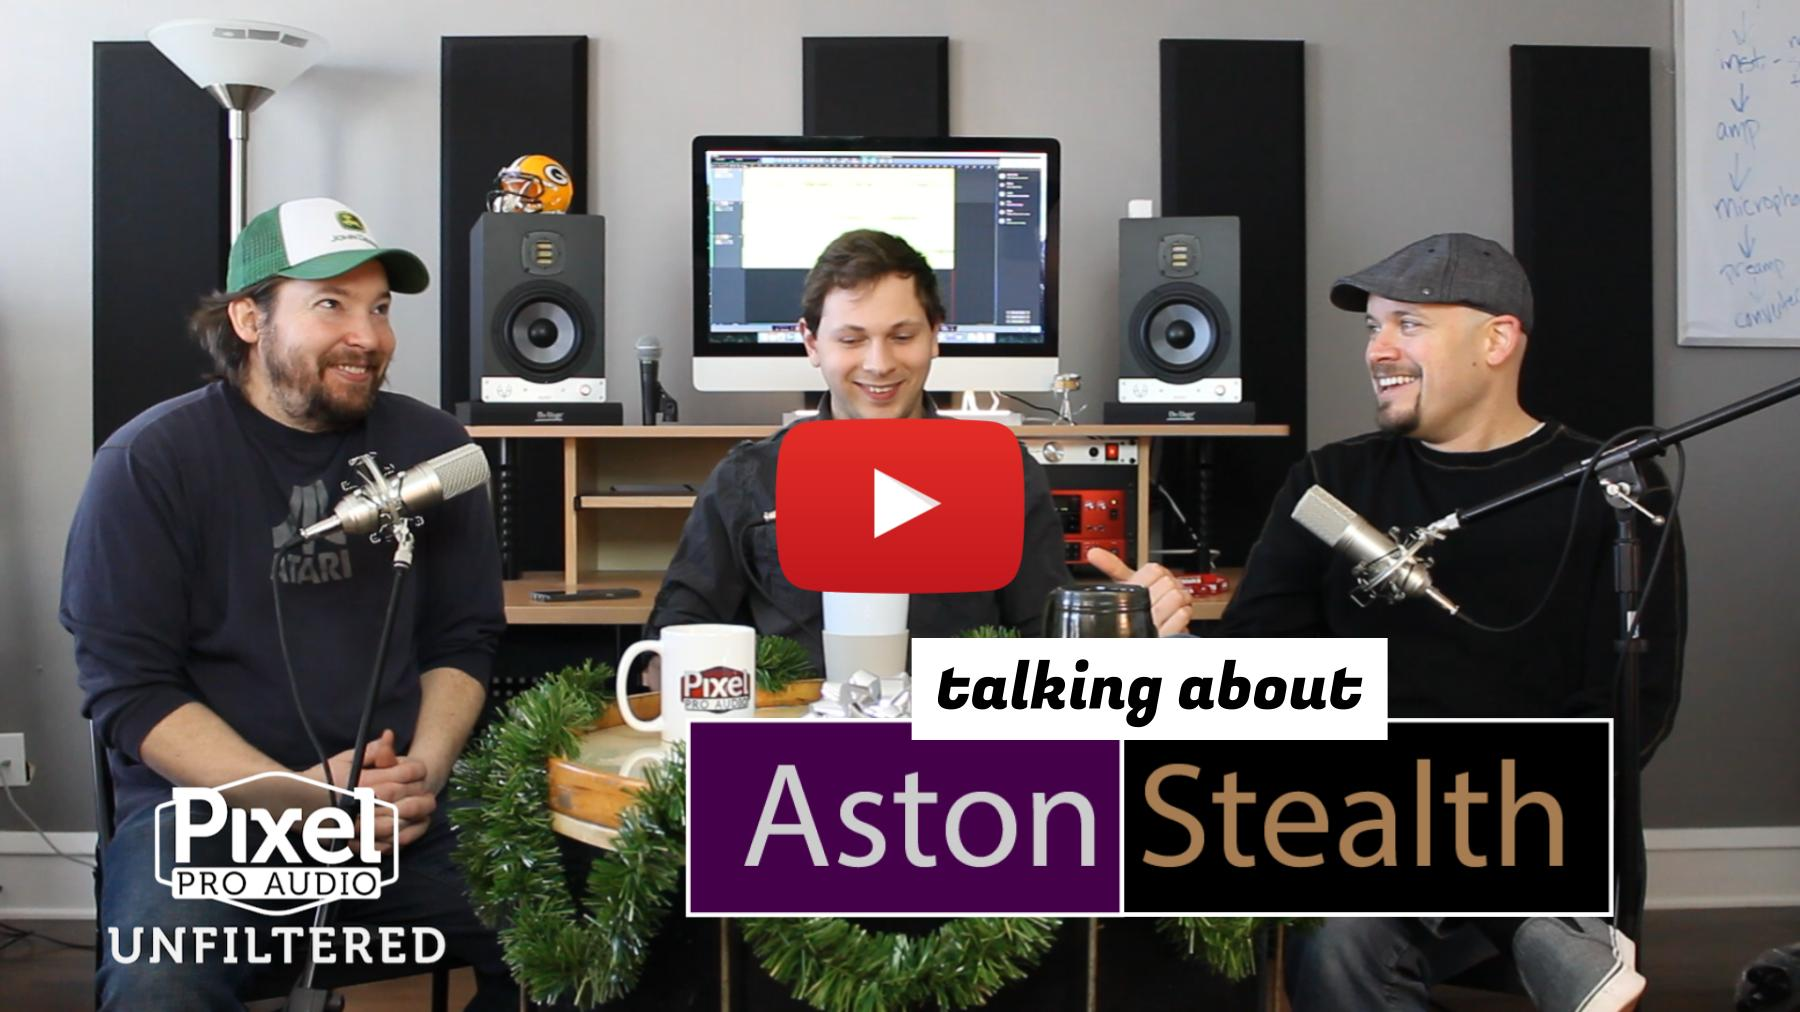 Weekly Show - Pixel Pro Audio: Unfiltered - Our Take on the Aston Stealth